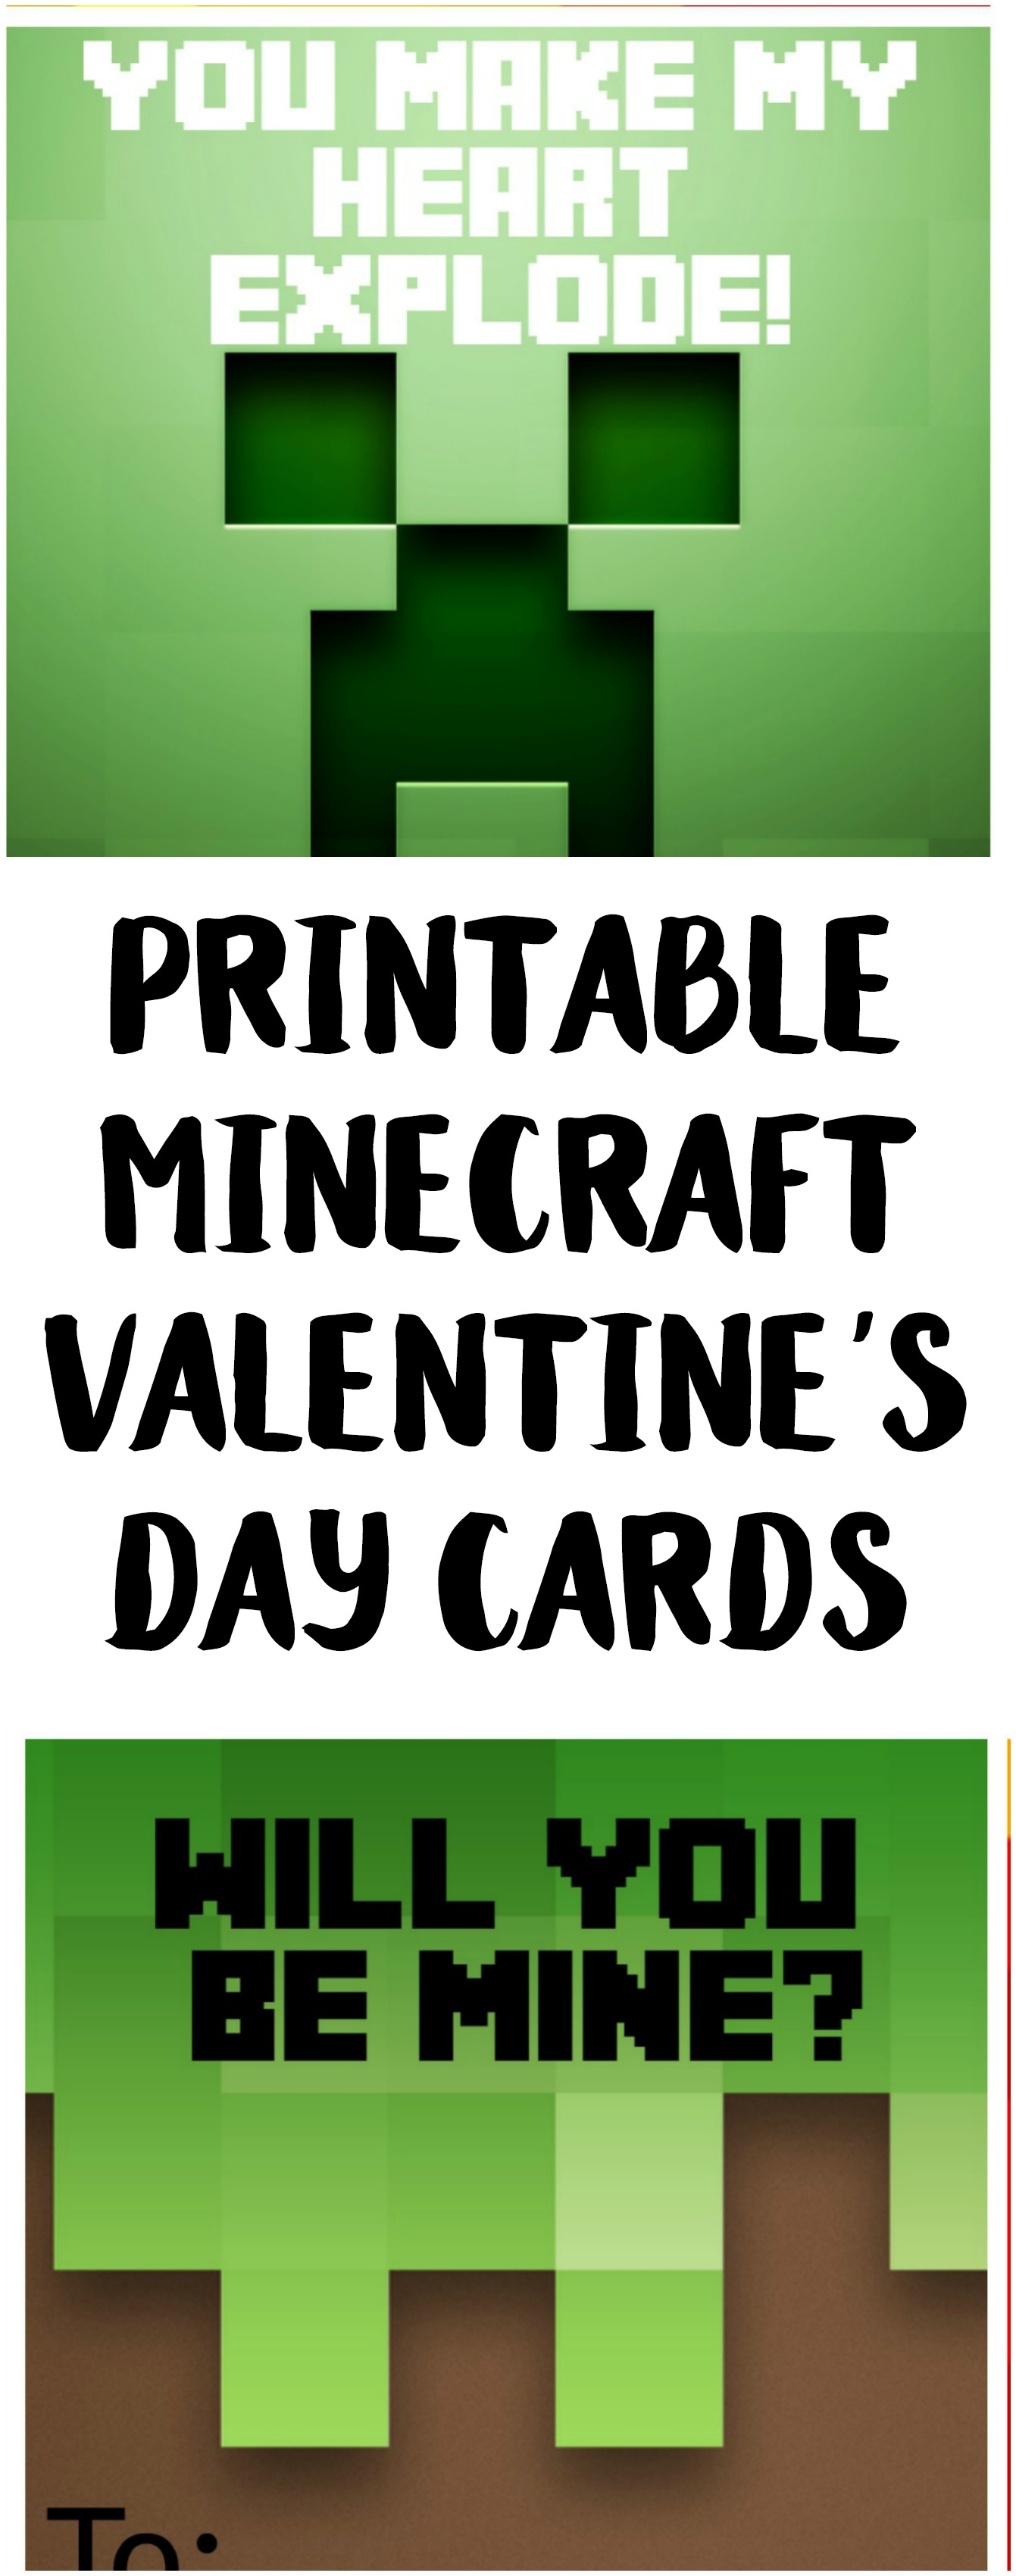 photograph regarding Minecraft Printable Valentines titled Cost-free Printable Minecraft Valentines Working day Playing cards - Not Really